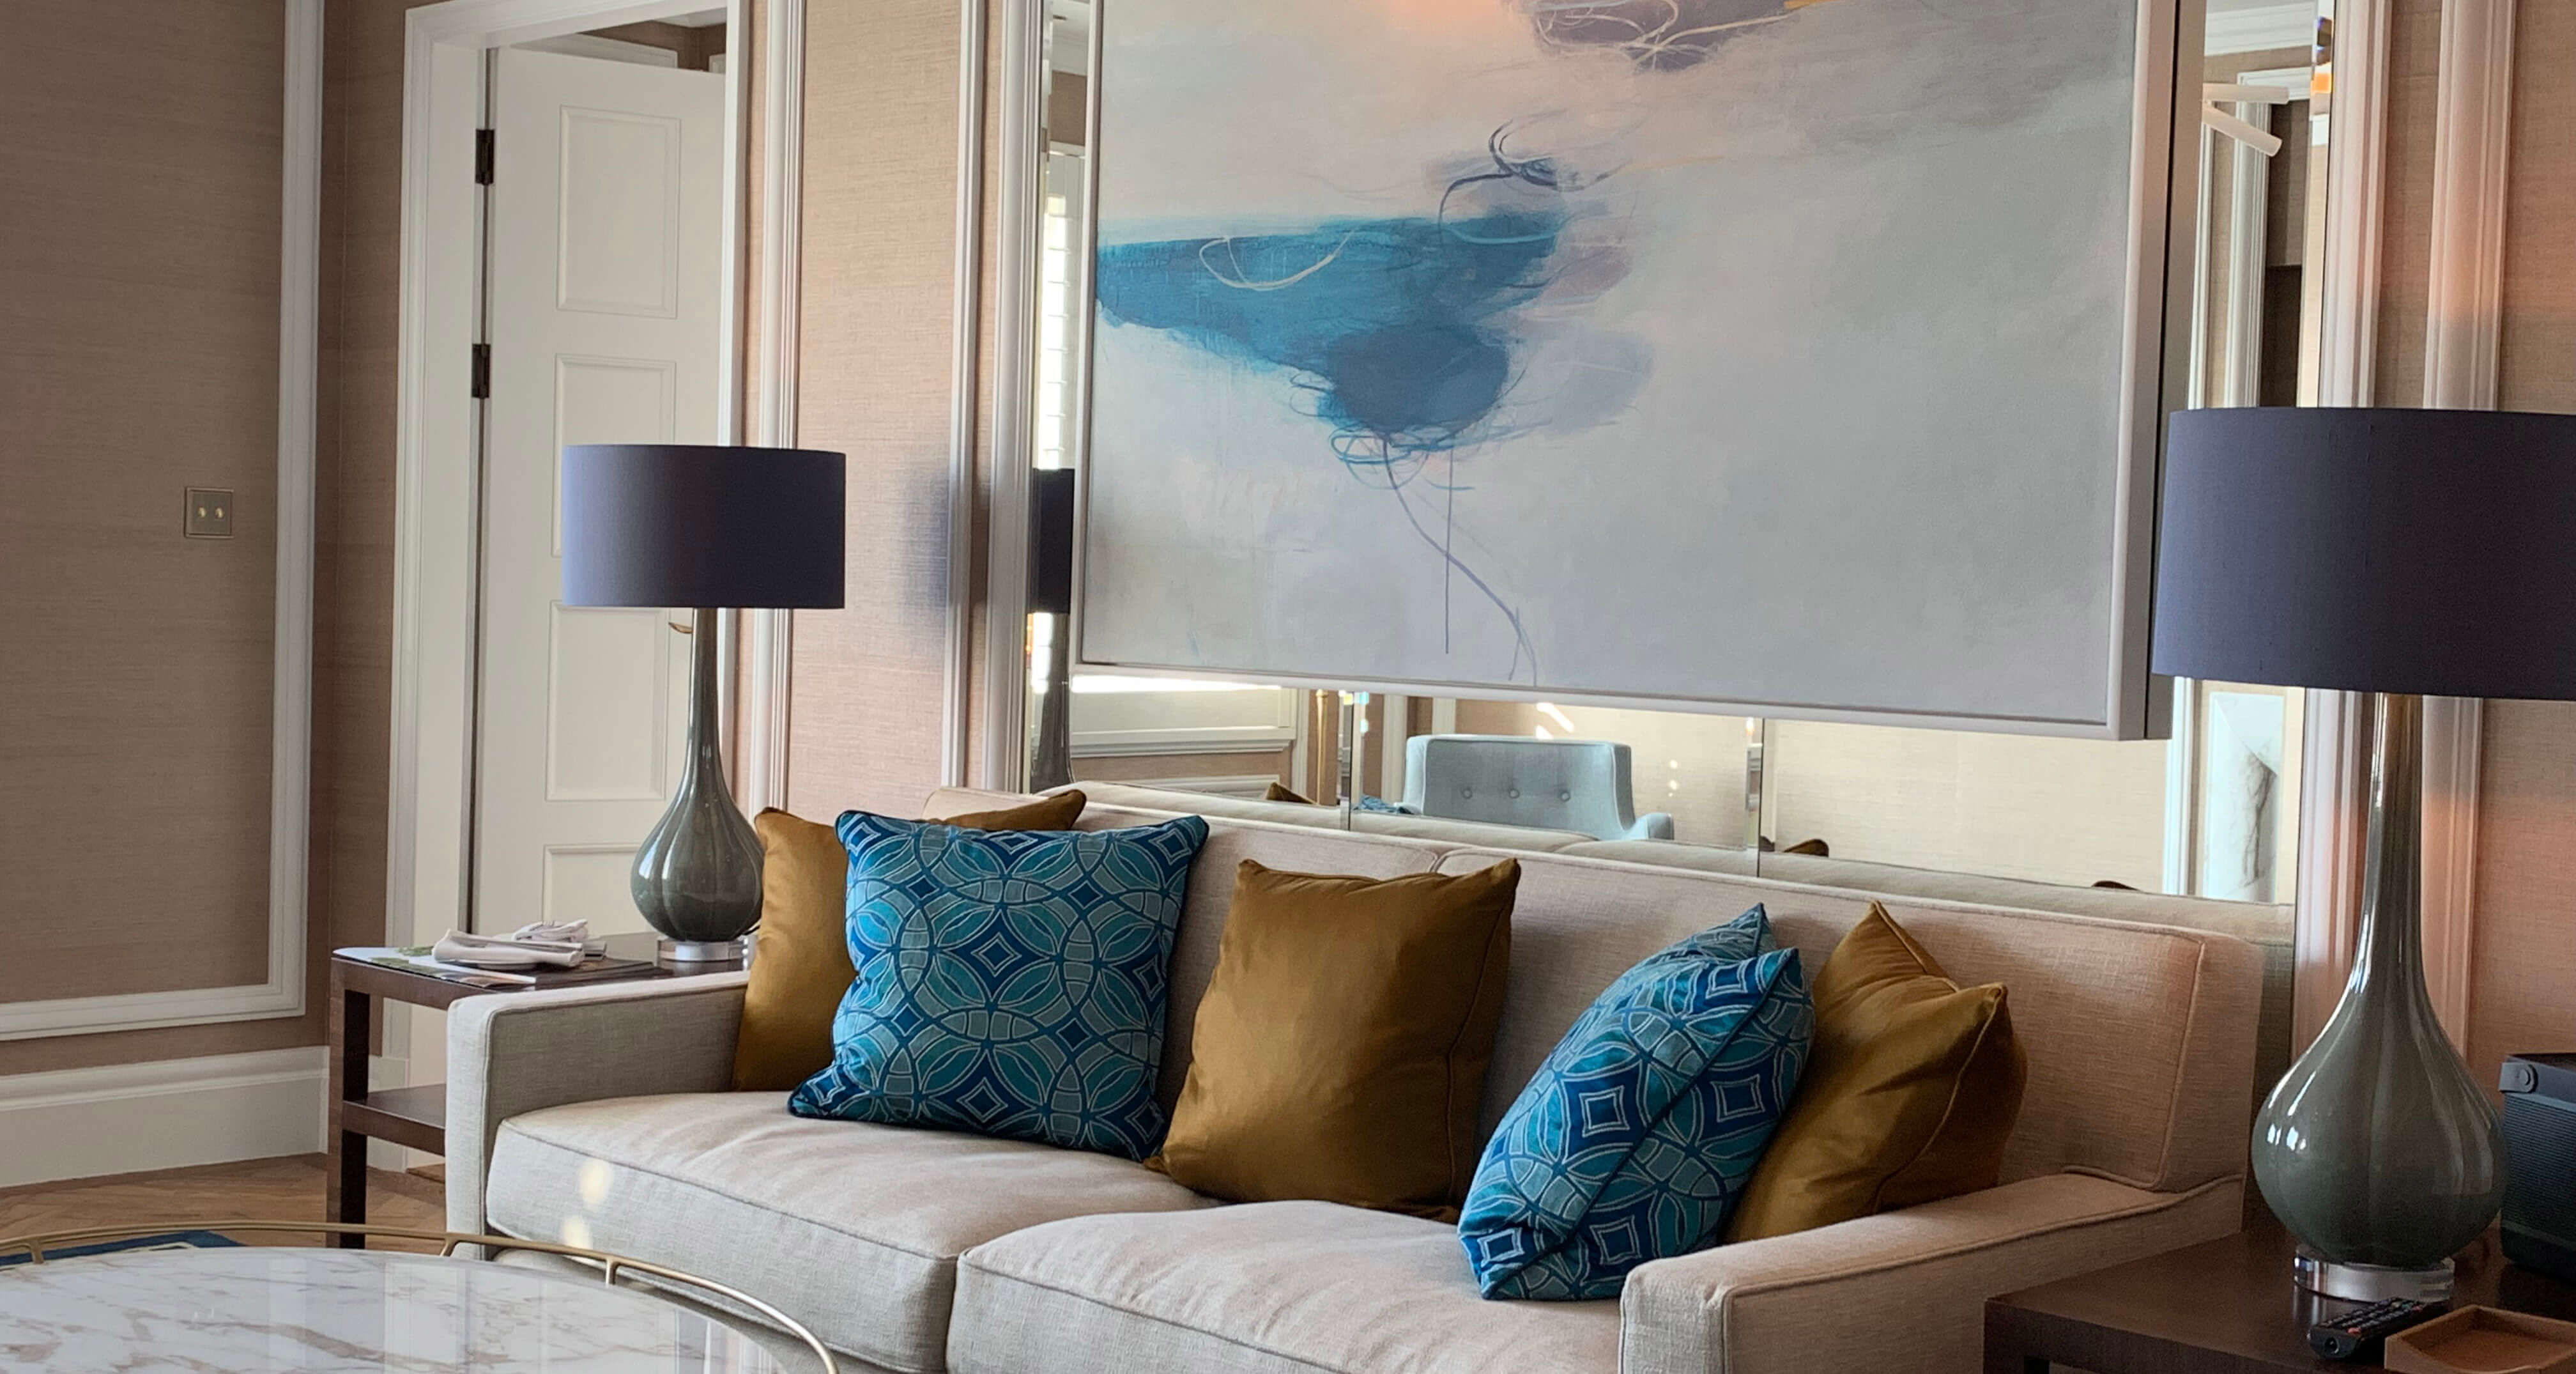 Cadogan hotel London suite with blue and gold cushions